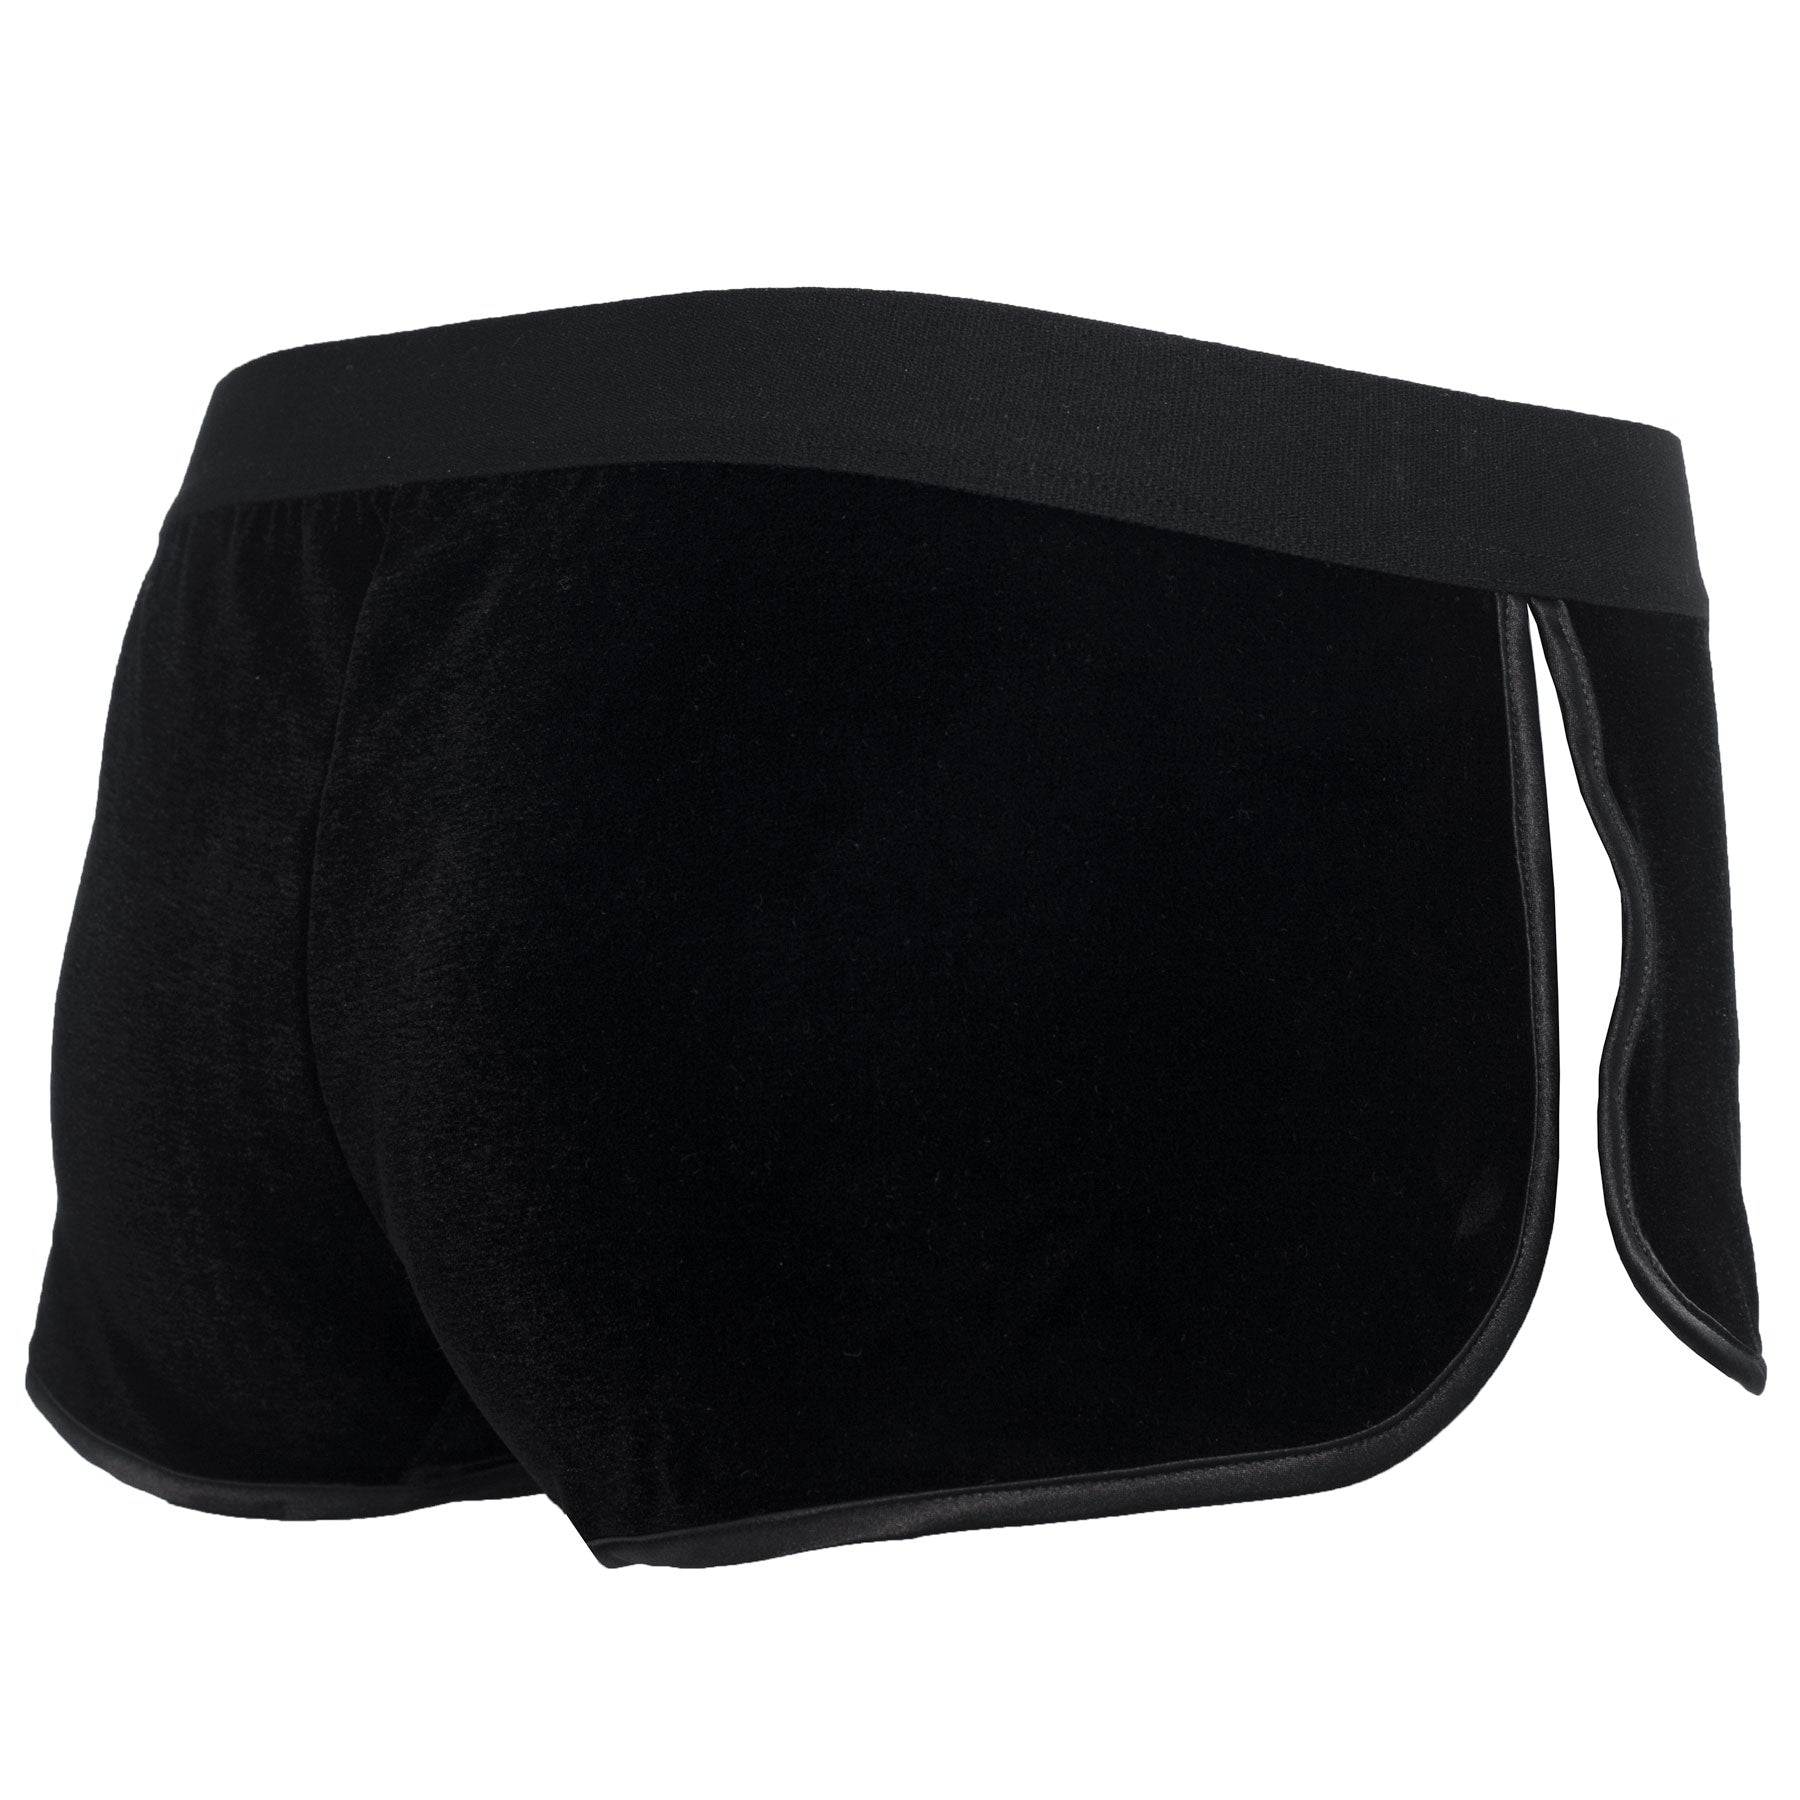 Kriss Soonik x bltp Velvet mini shorts